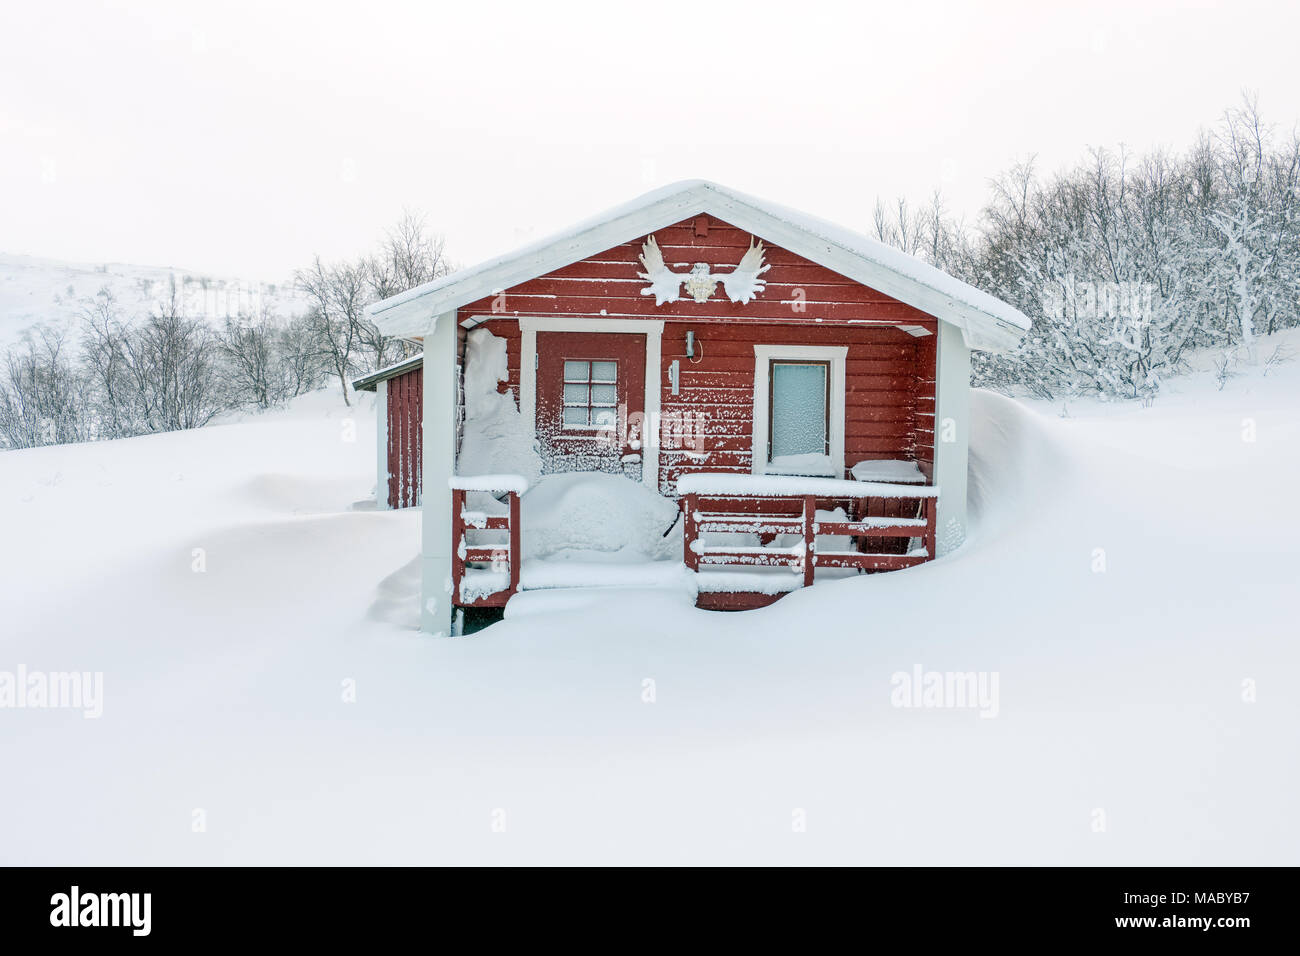 Snow covered cabin in a Sami village in Swedish Lapland - Stock Image